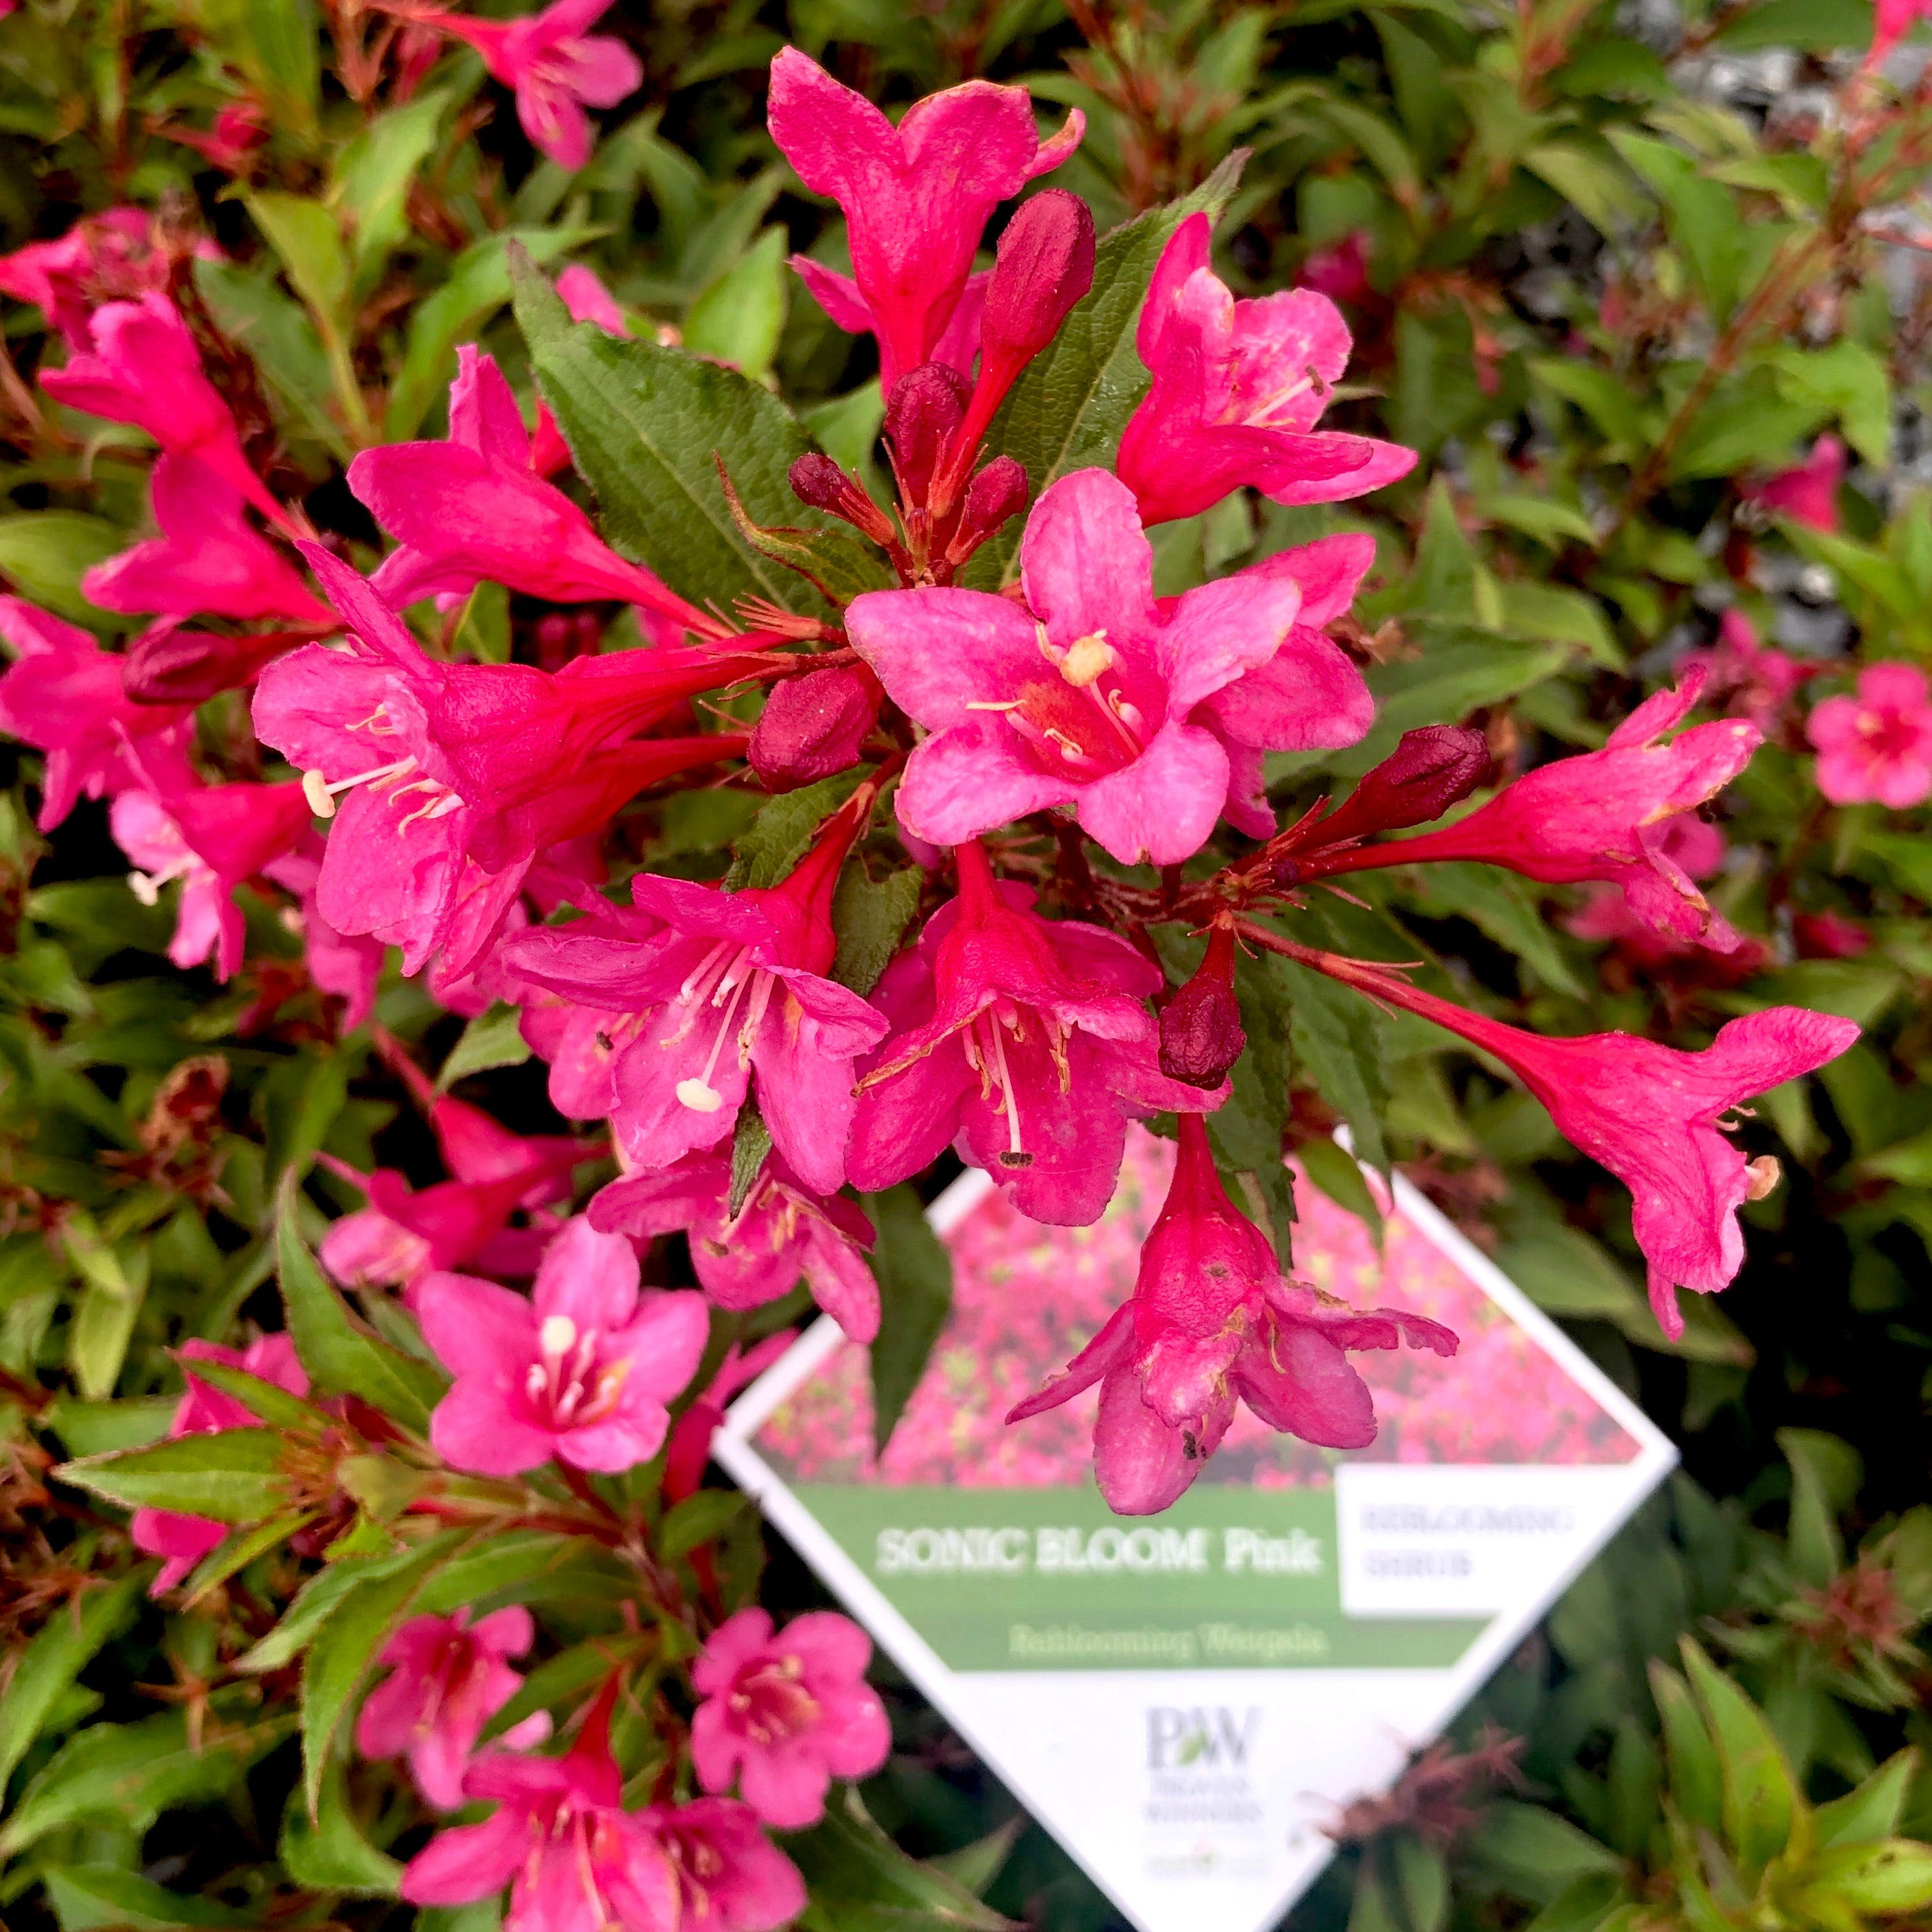 Sonic Bloom® Pink Weigela